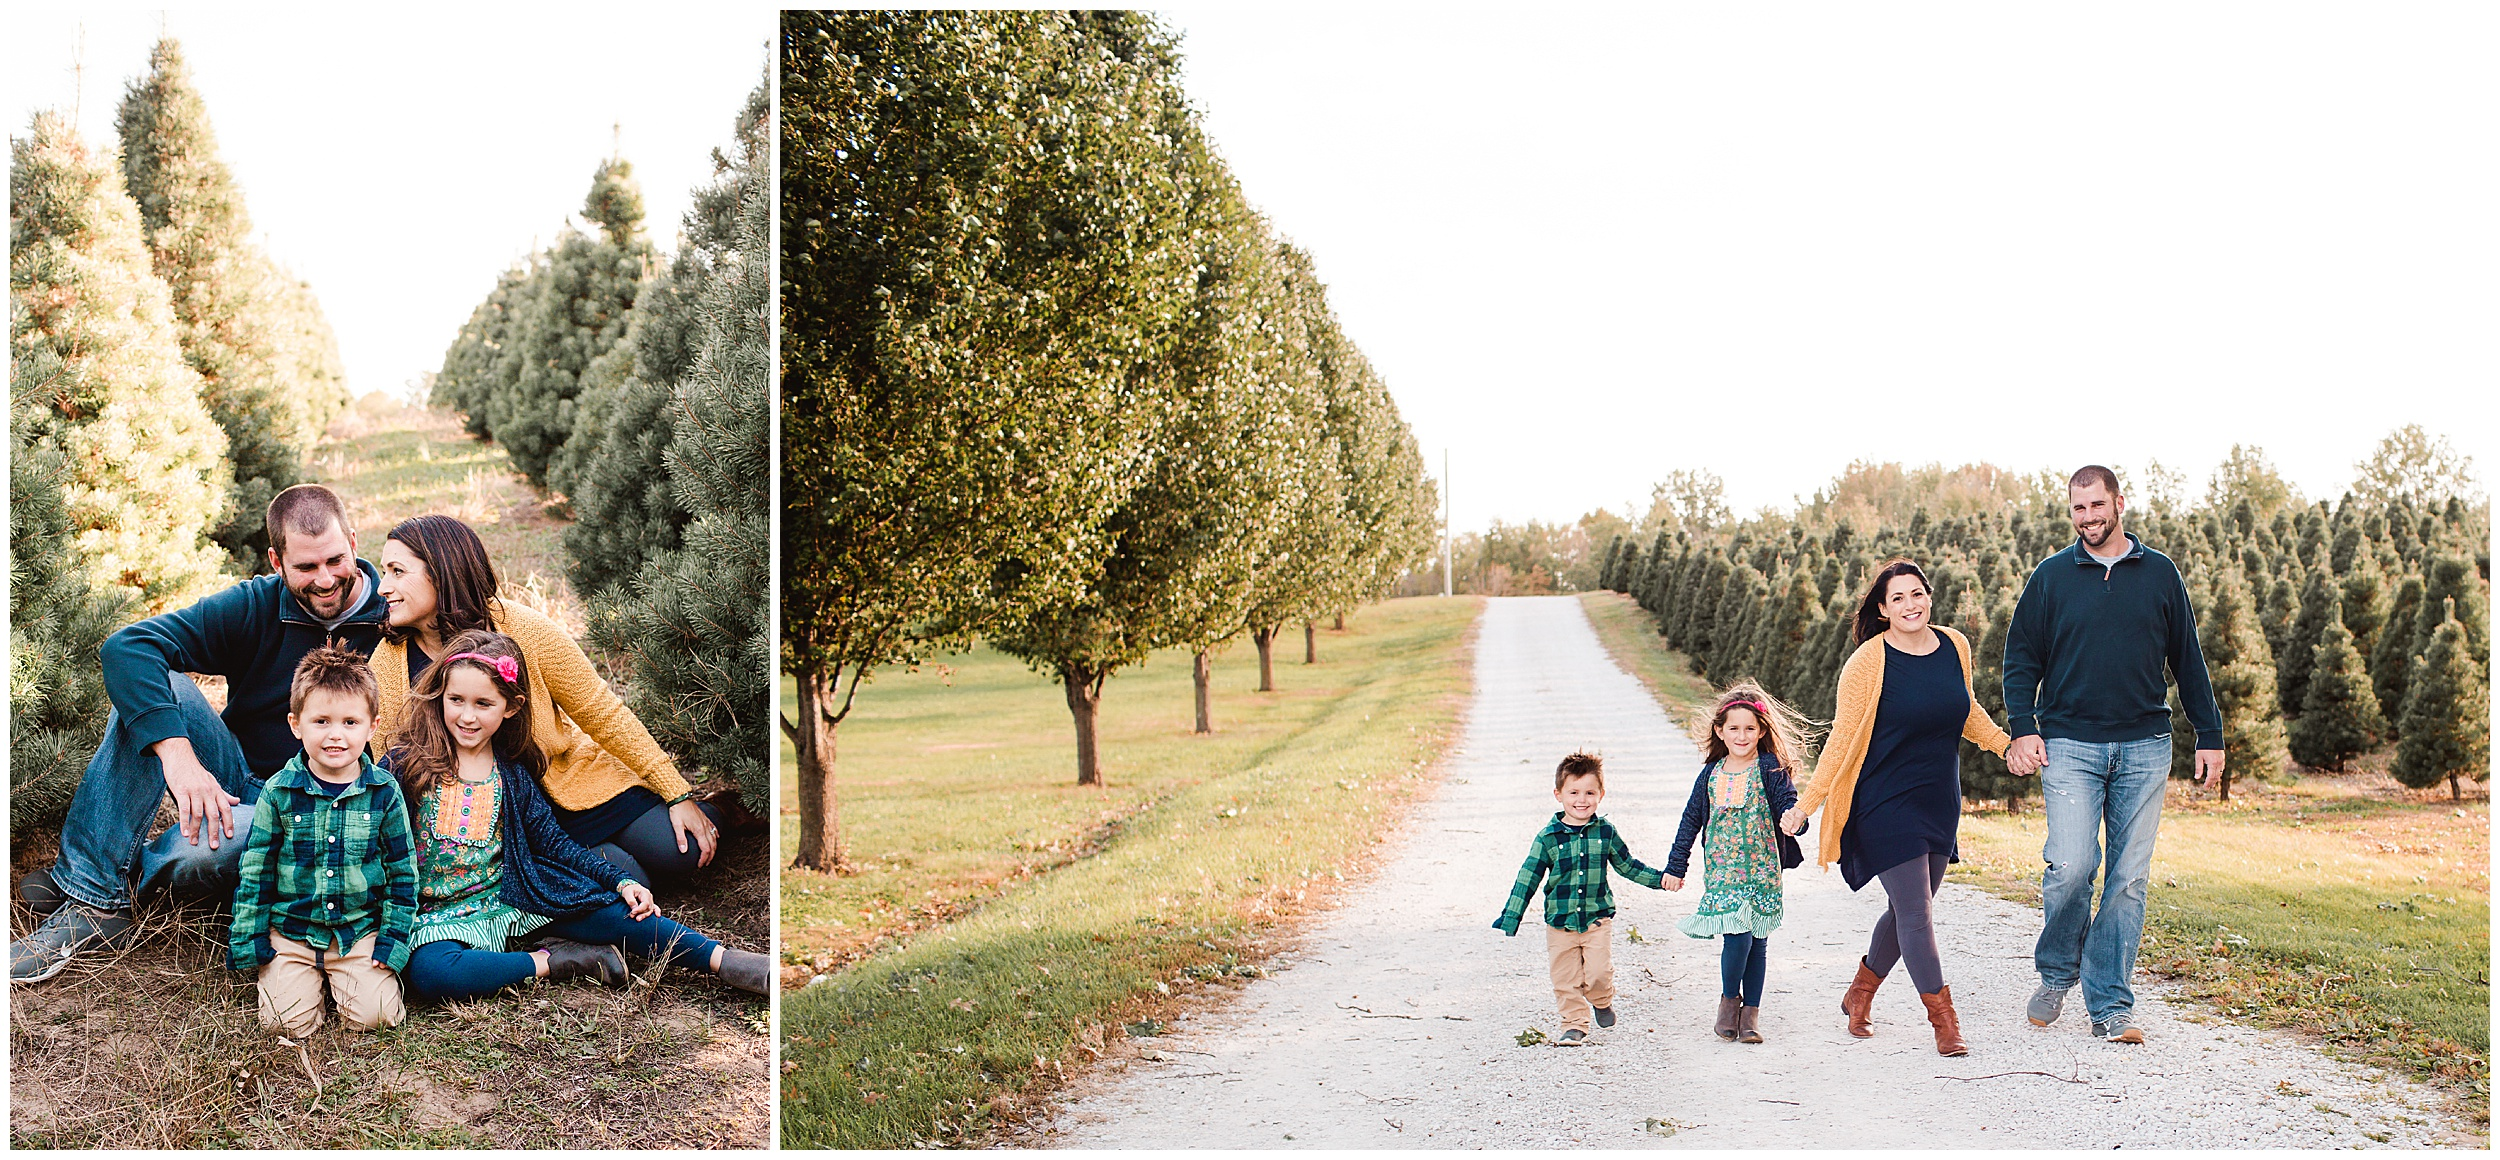 Indianapolis Family Photographer_Kelli White Photography_IG_0214.jpg